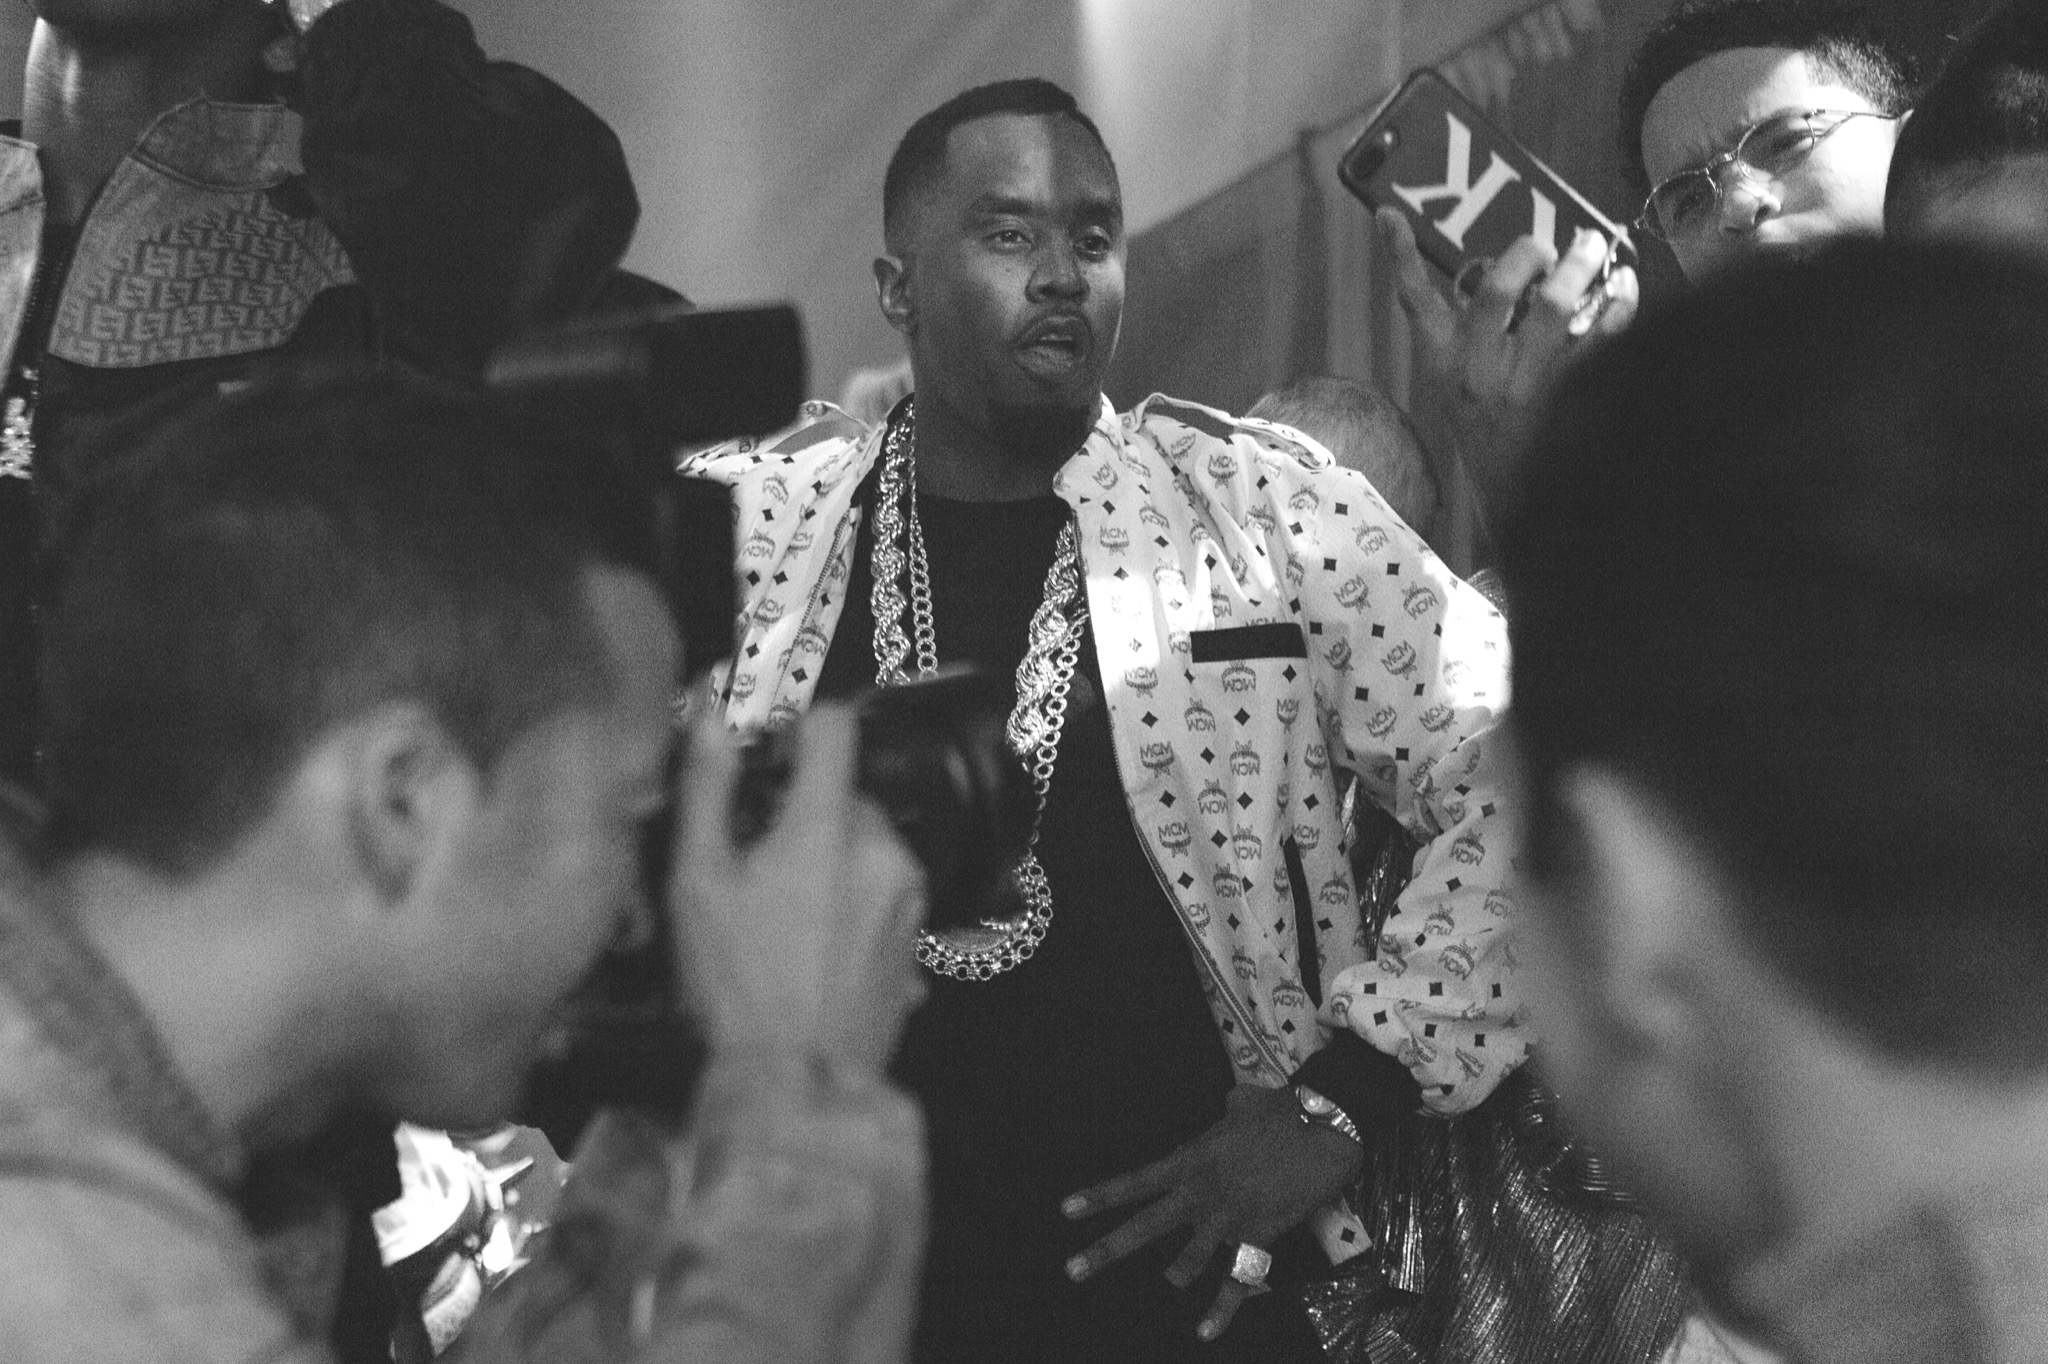 King Ice at Snoop Dogg C Day Party.66.jpg